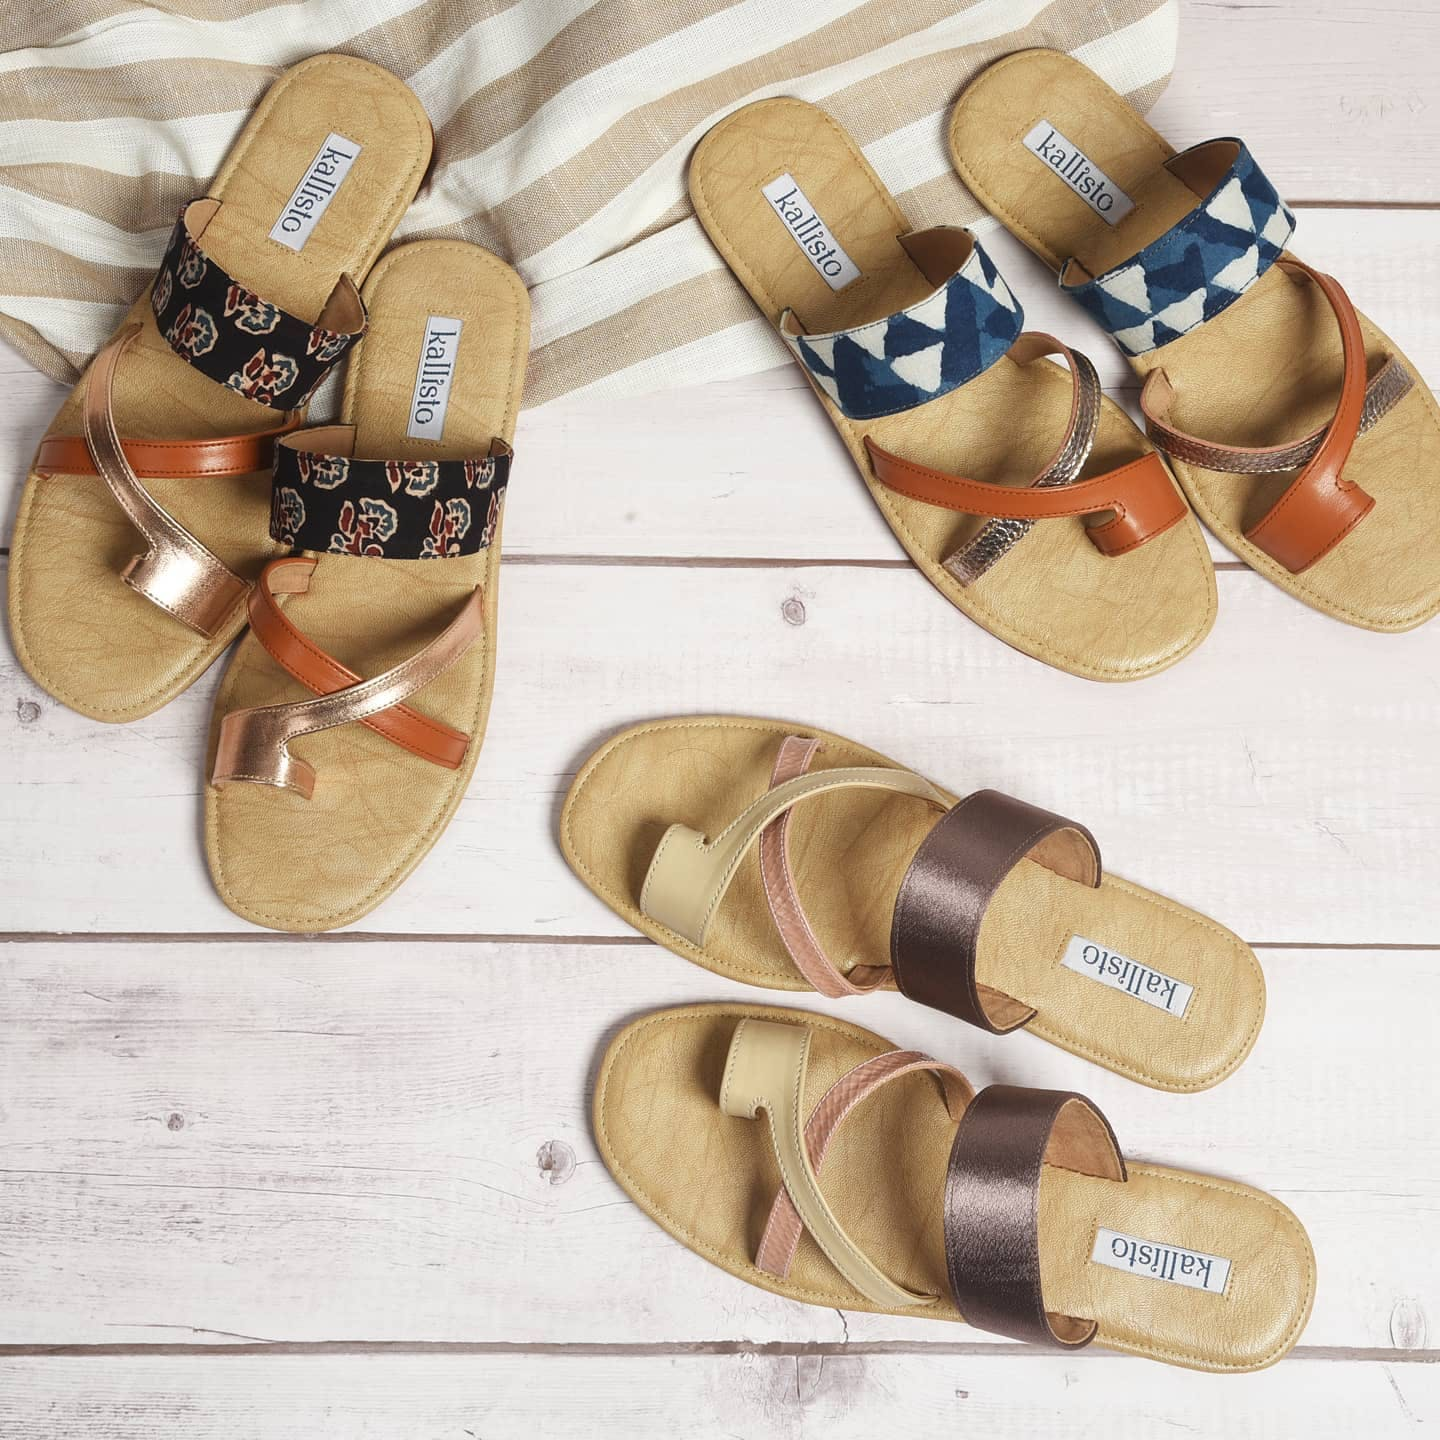 Brown,Khaki,Tan,Fashion,Beige,Collection,Natural material,Material property,Peach,Slide sandal